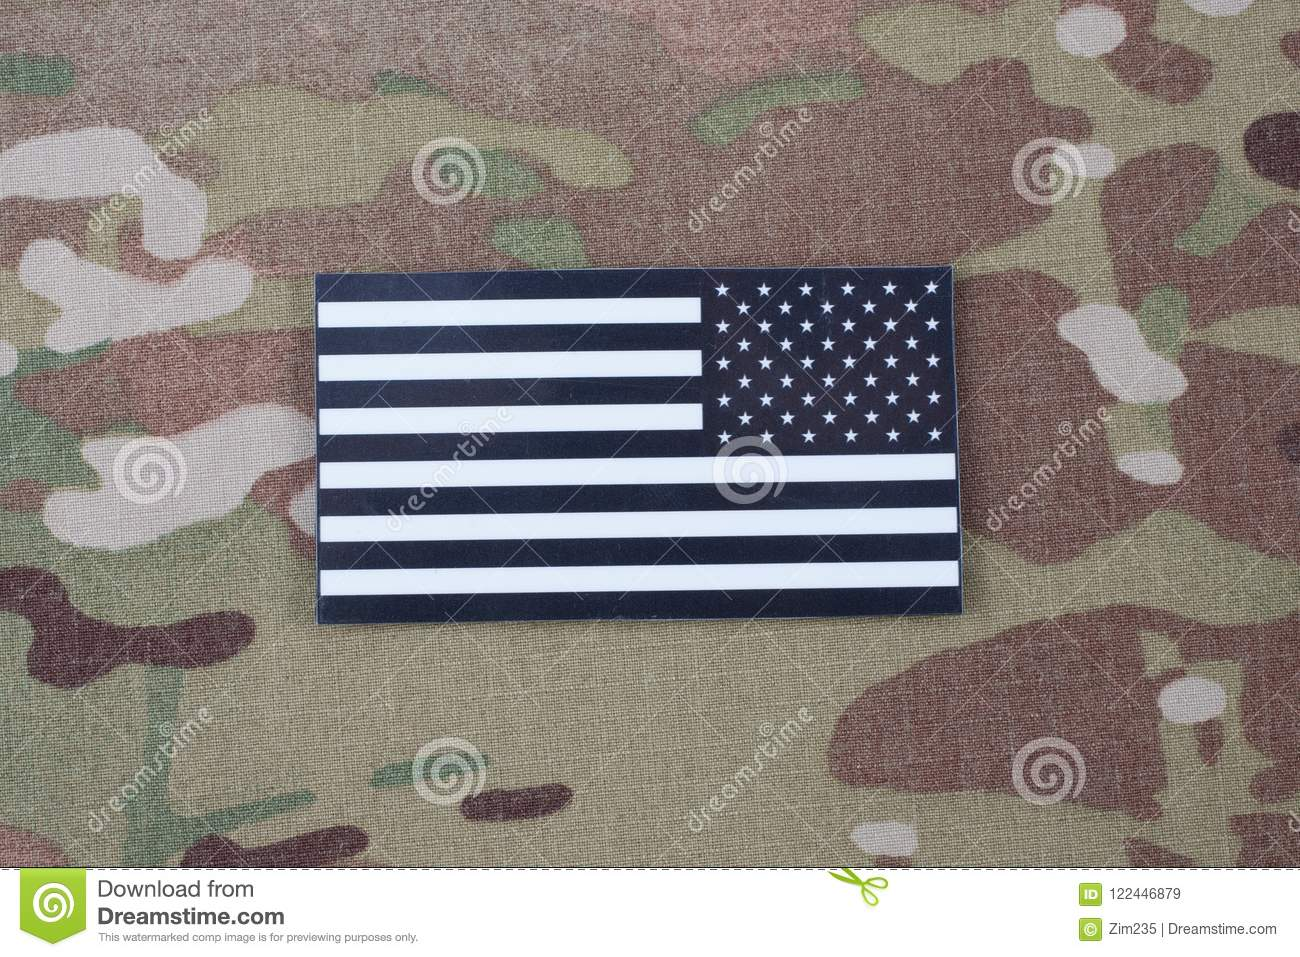 US ARMY flag patch on camouflage uniform